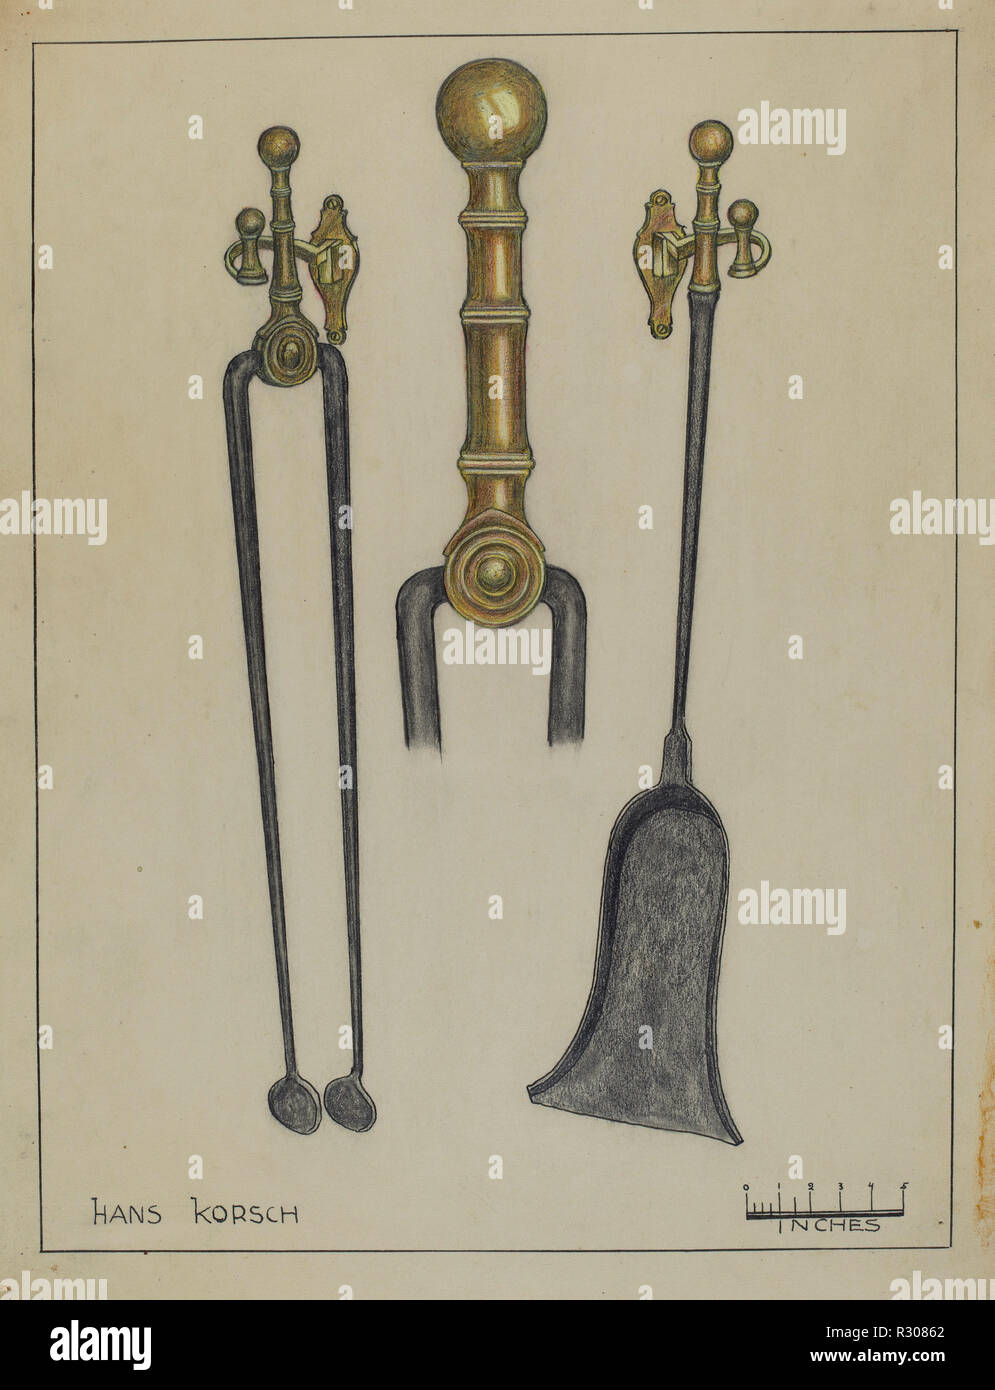 Fireplace Set. Dated: 1935/1942. Dimensions: overall: 29.8 x 22.8 cm (11 3/4 x 9 in.). Medium: graphite and watercolor on paper. Museum: National Gallery of Art, Washington DC. Author: Hans Korsch. - Stock Image